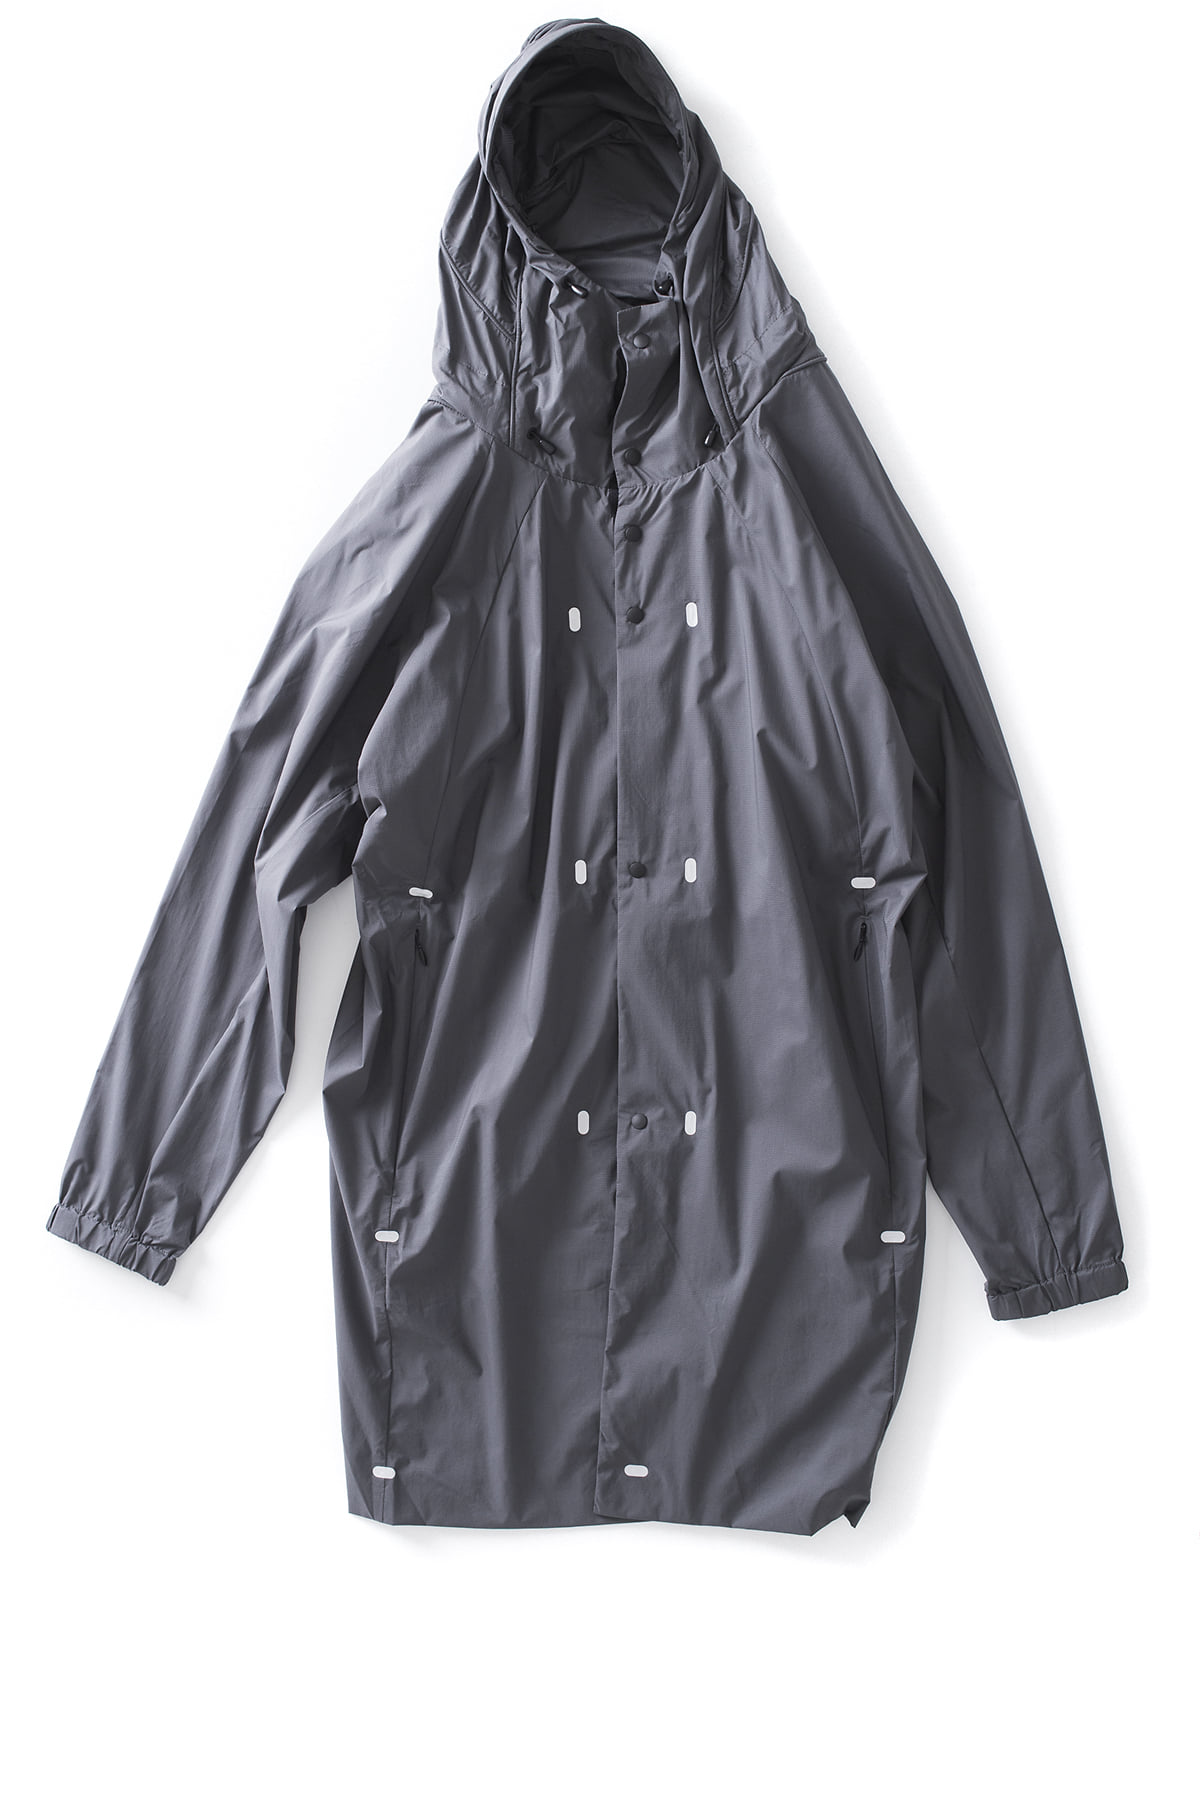 alk phenix : Dome Coat /EPIC (Charcoal Grey)